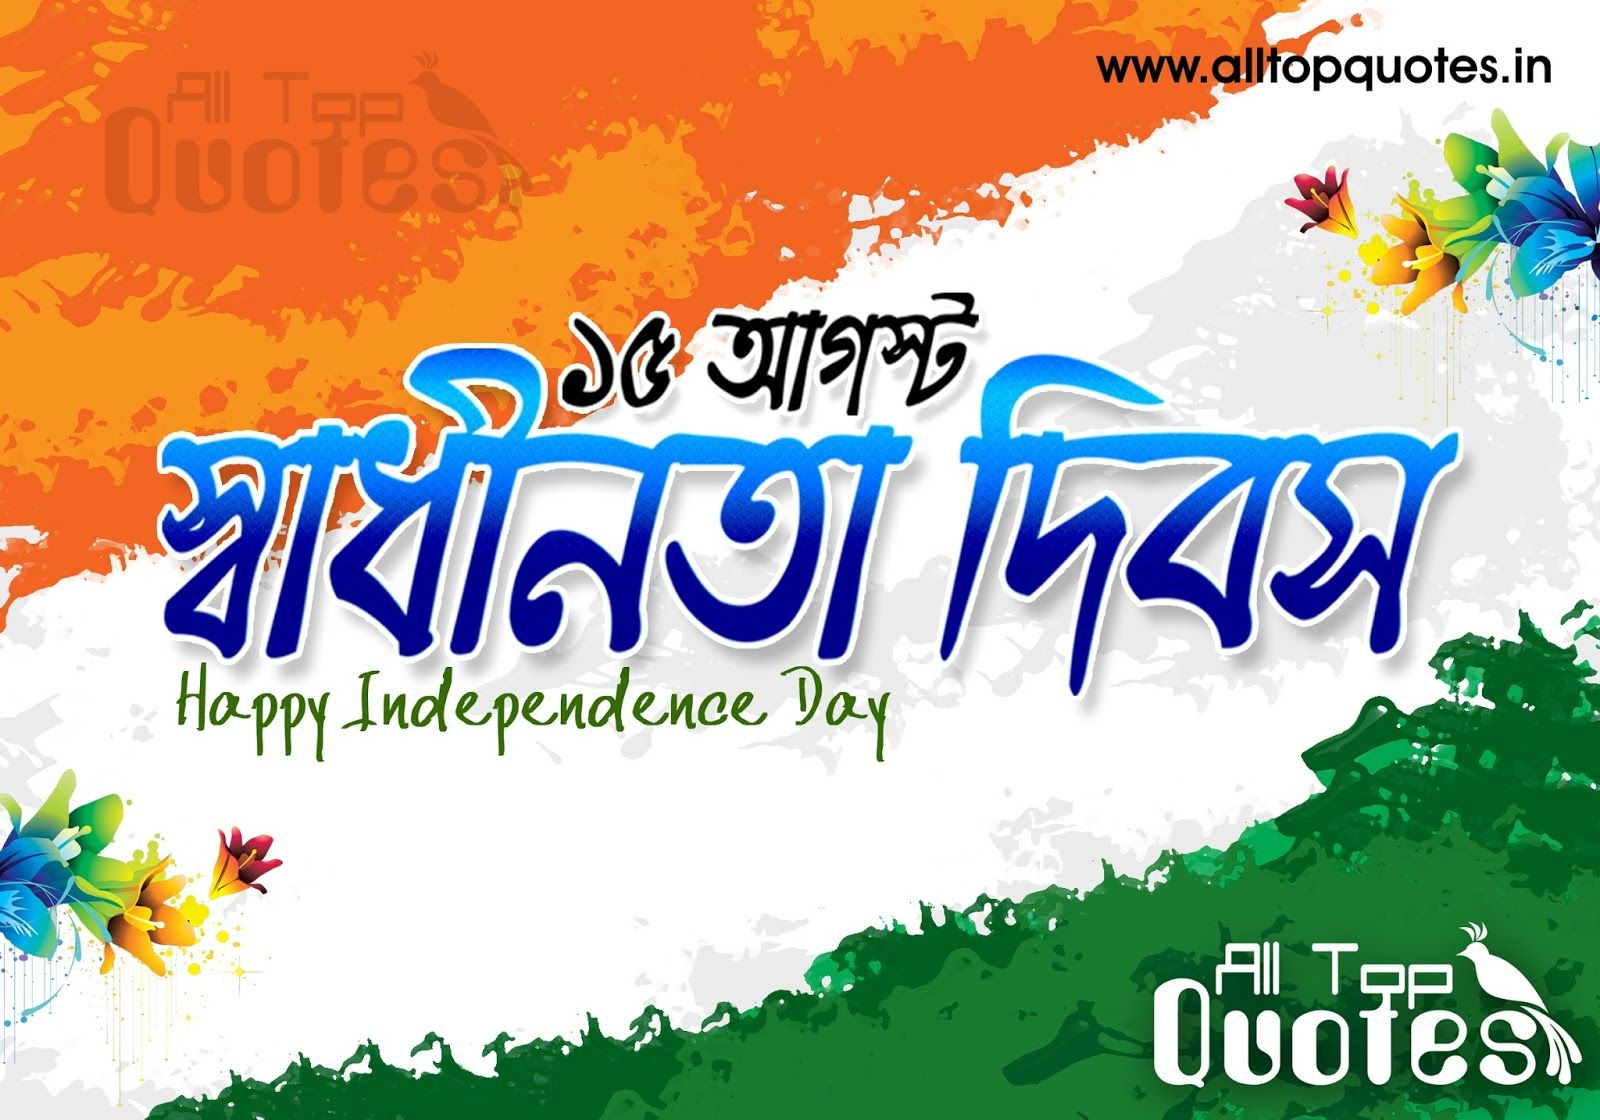 happy independence day bengali messages All Top Quotesin 1600x1120